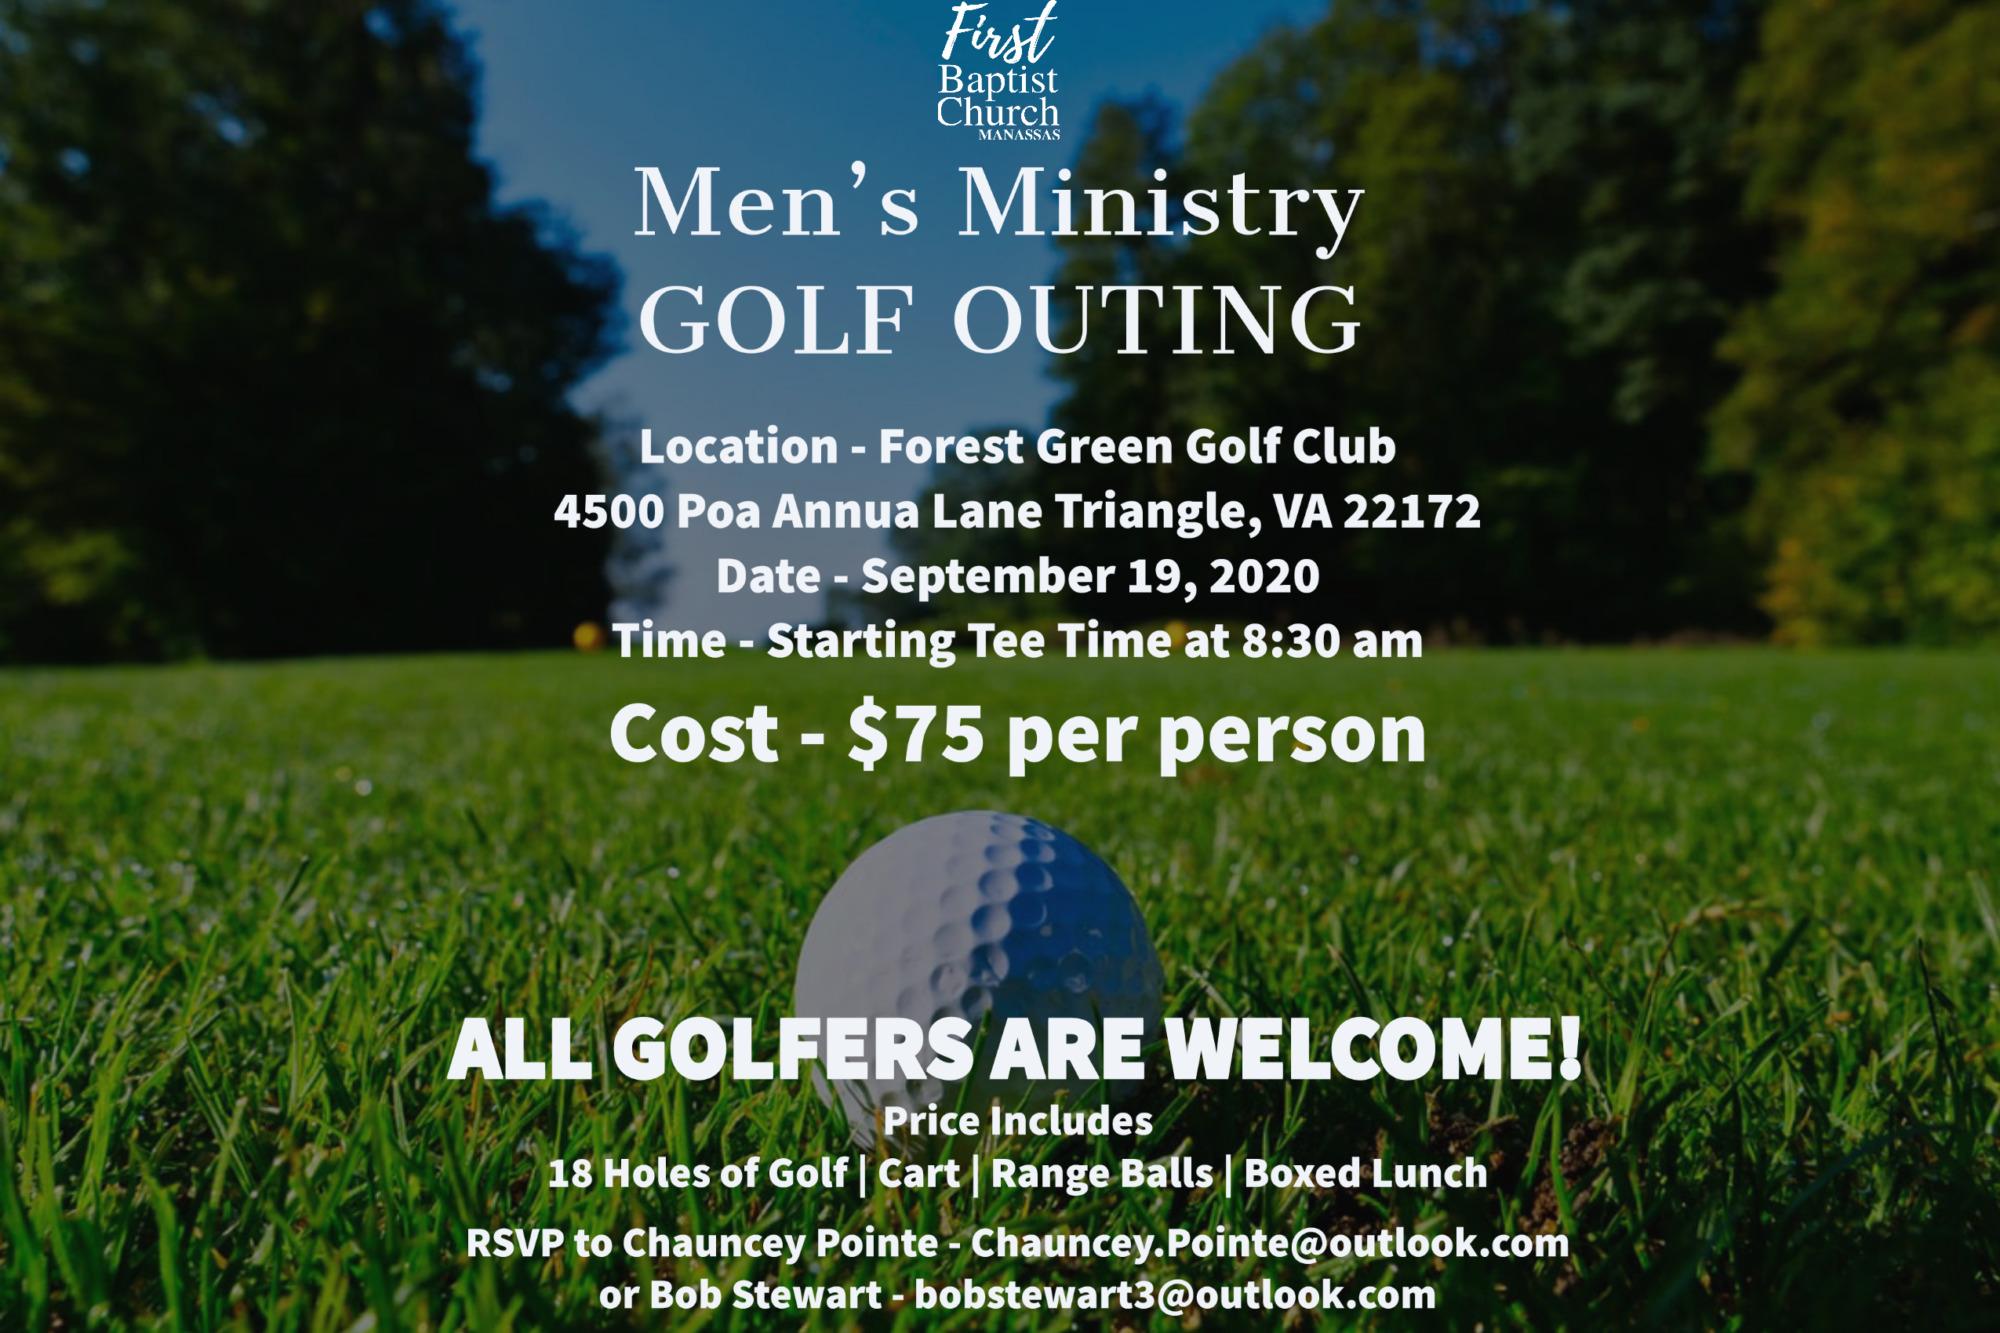 Men's Ministry Golf Outing @ Forest Greens Golf Club | Triangle | Virginia | United States